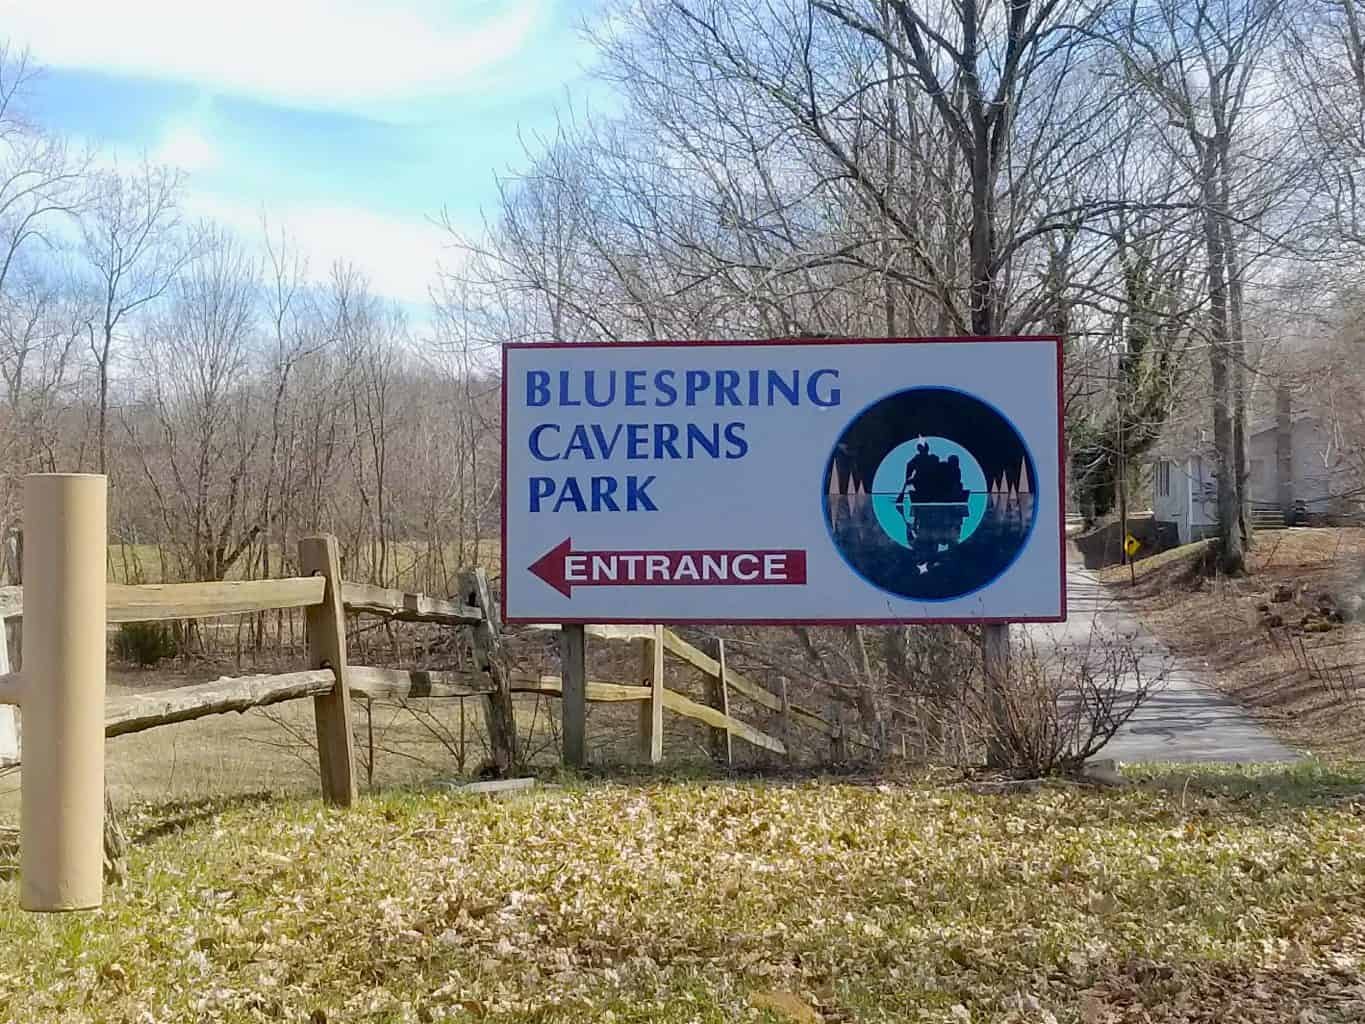 Bluespring Caverns Park entrance